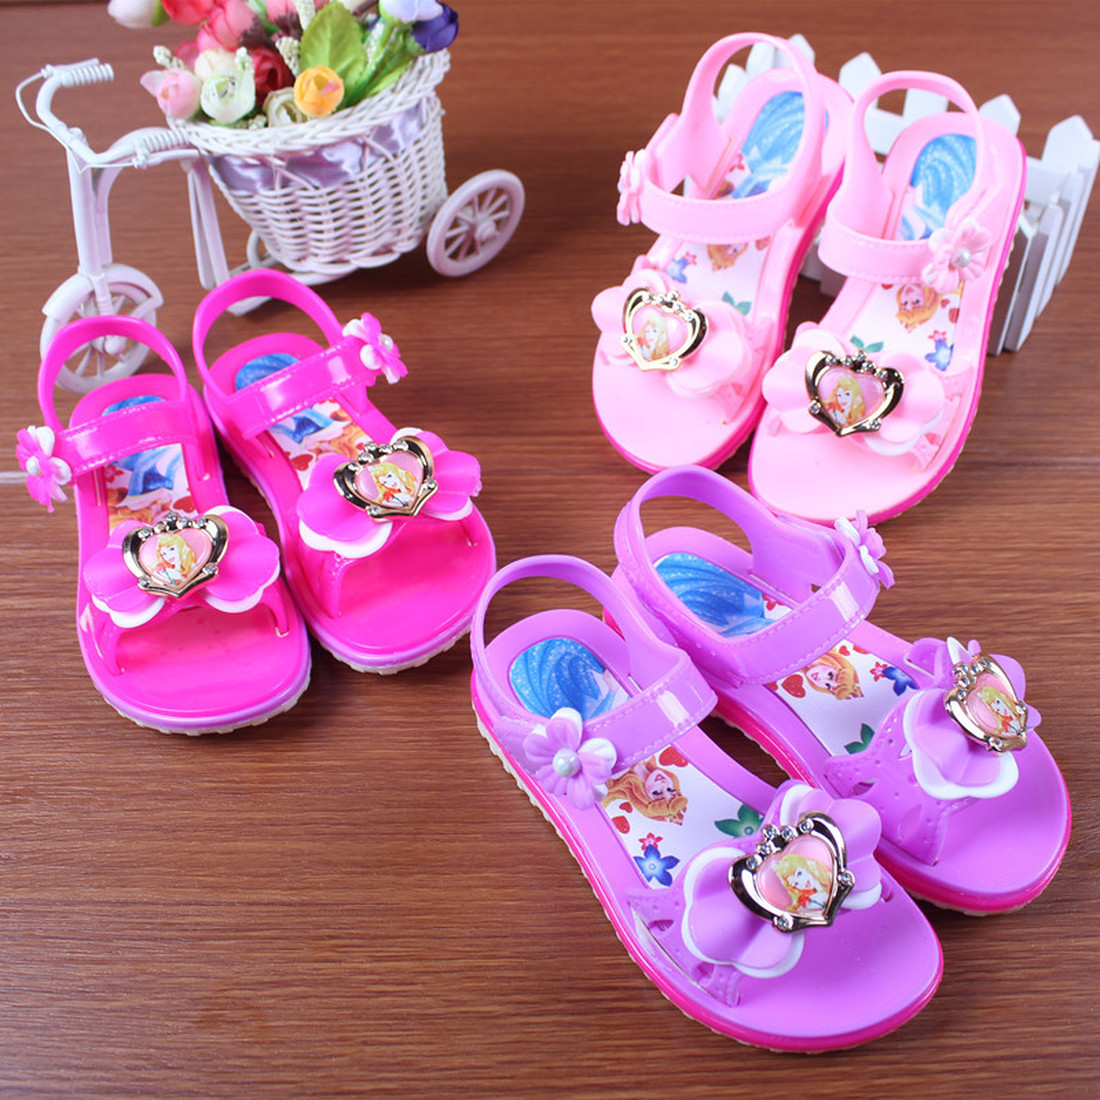 Toddler Girl Sandals Summer Soft Bottom Beach Shoes Little Girl Fashionable Princess Sandals Children Casual Shoes Student Flats